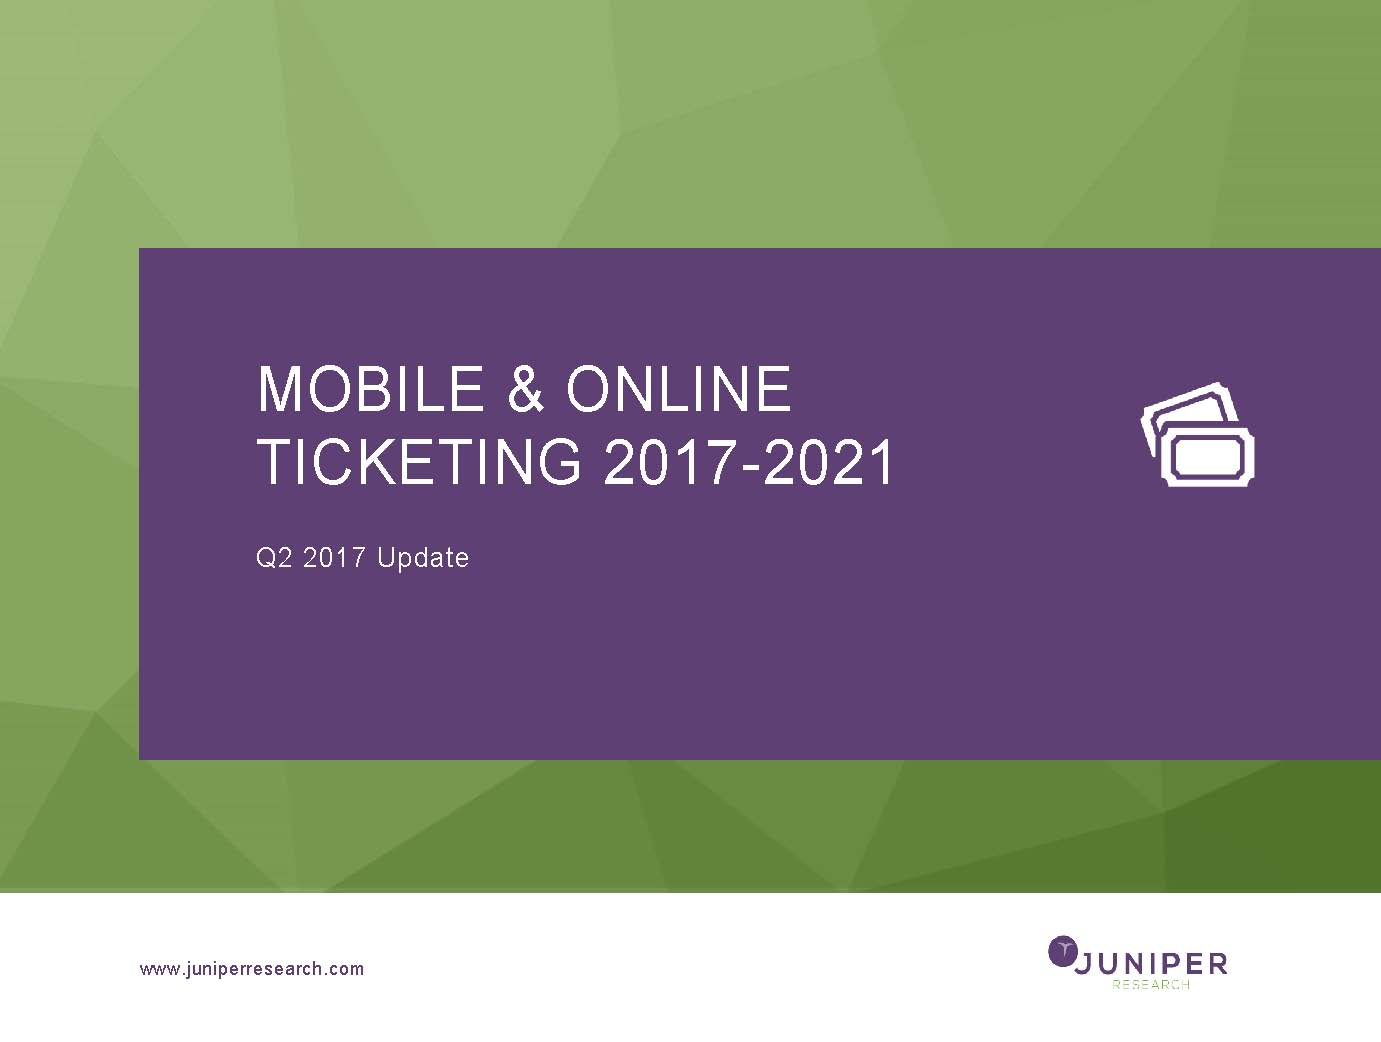 Mobile & Online Ticketing - Q2 2017